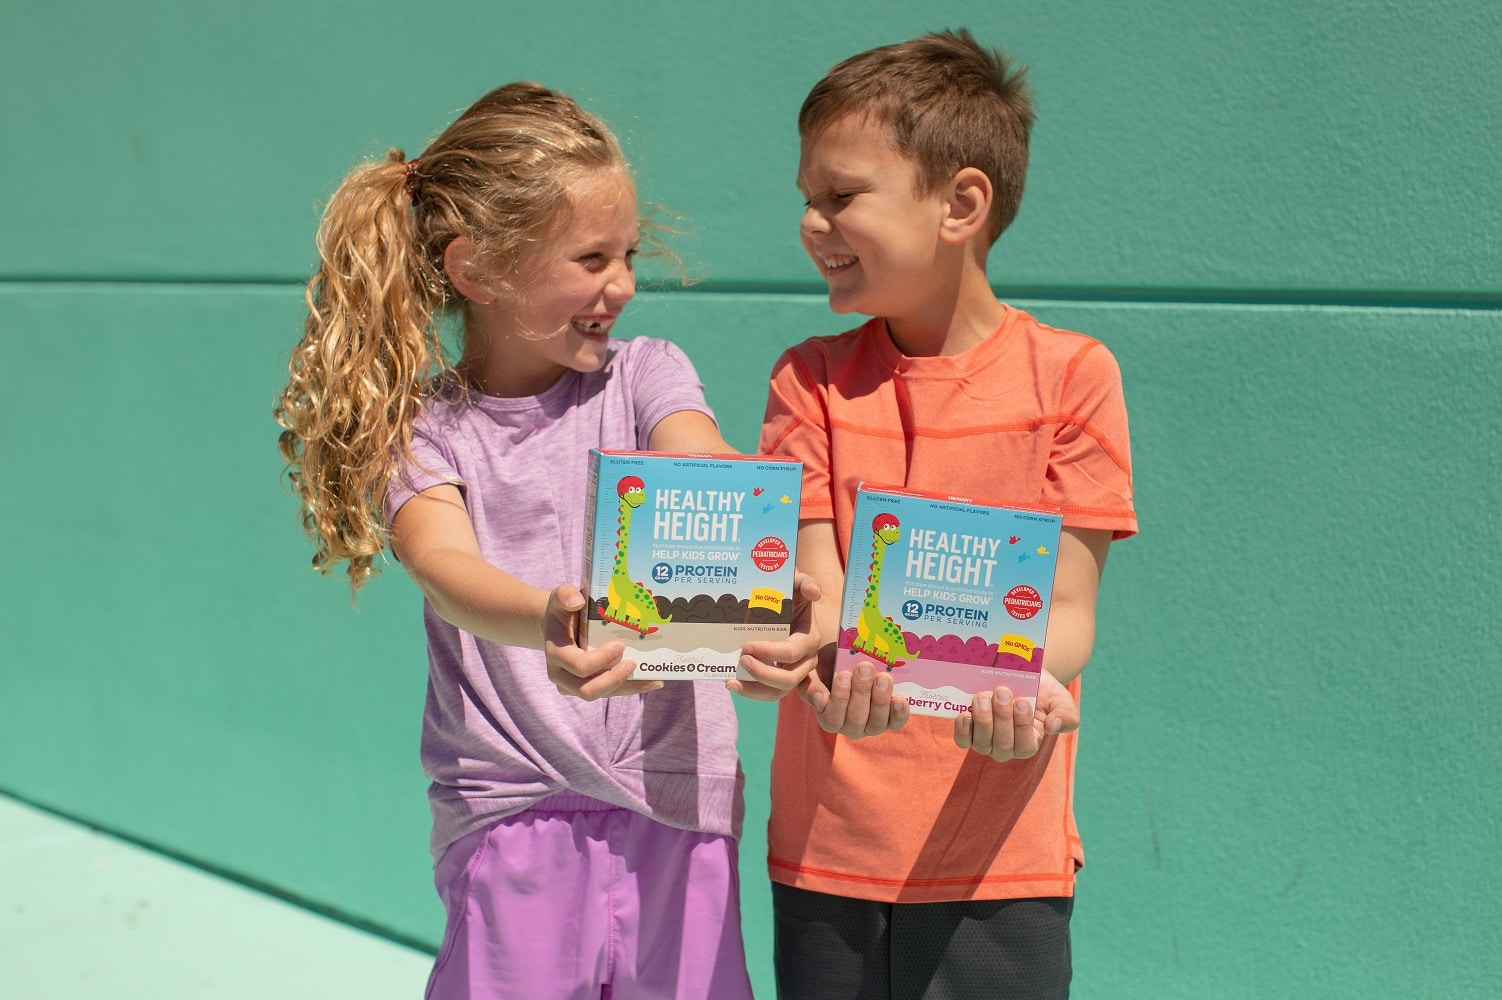 Nutritional Growth Solutions Introduces Healthy Height Snack Bar